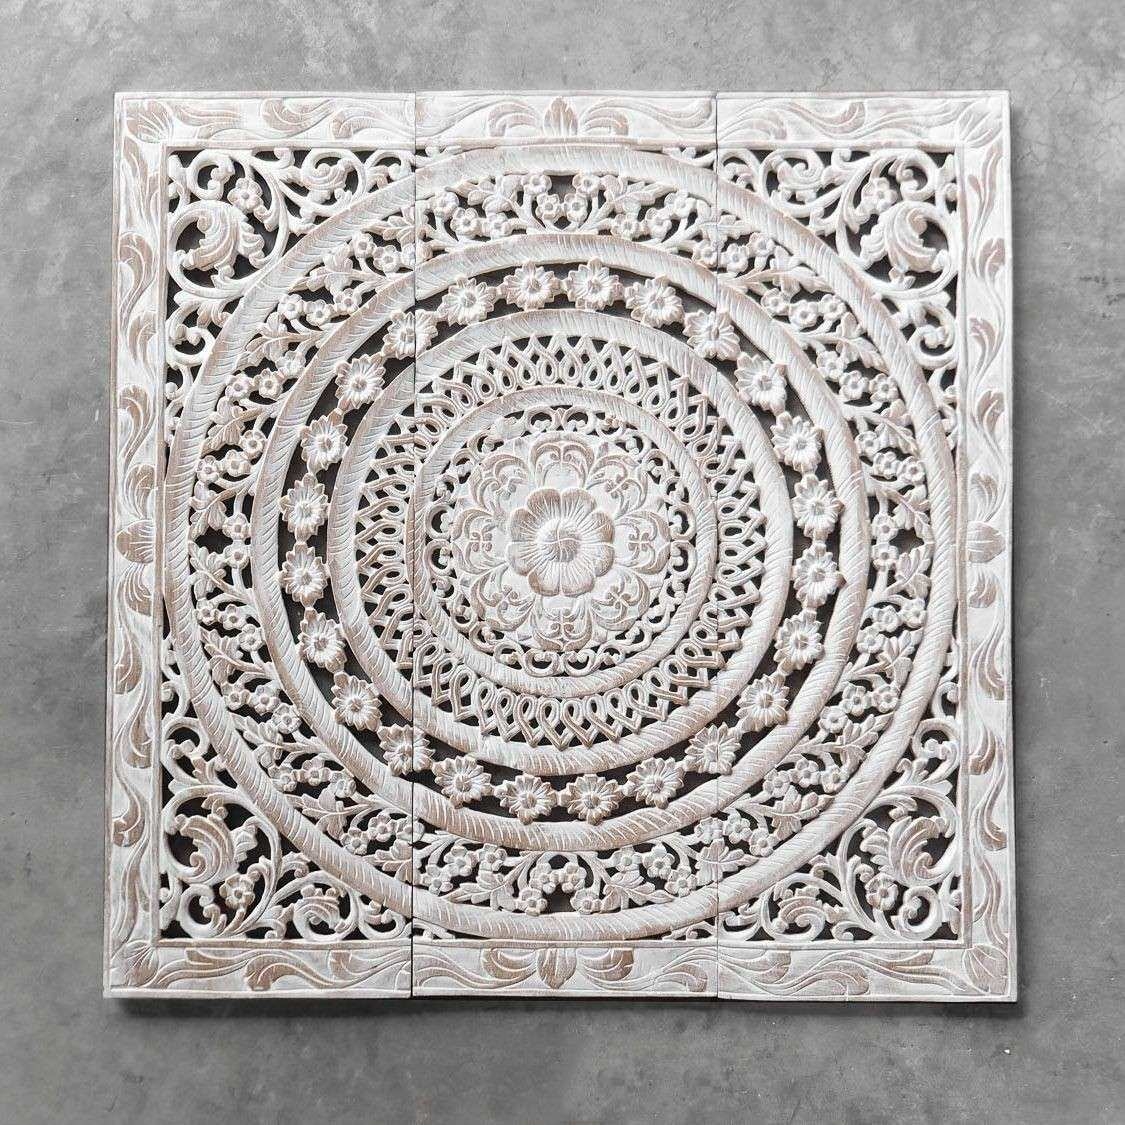 Moroccan Decent Wood Carving Wall Art Hanging